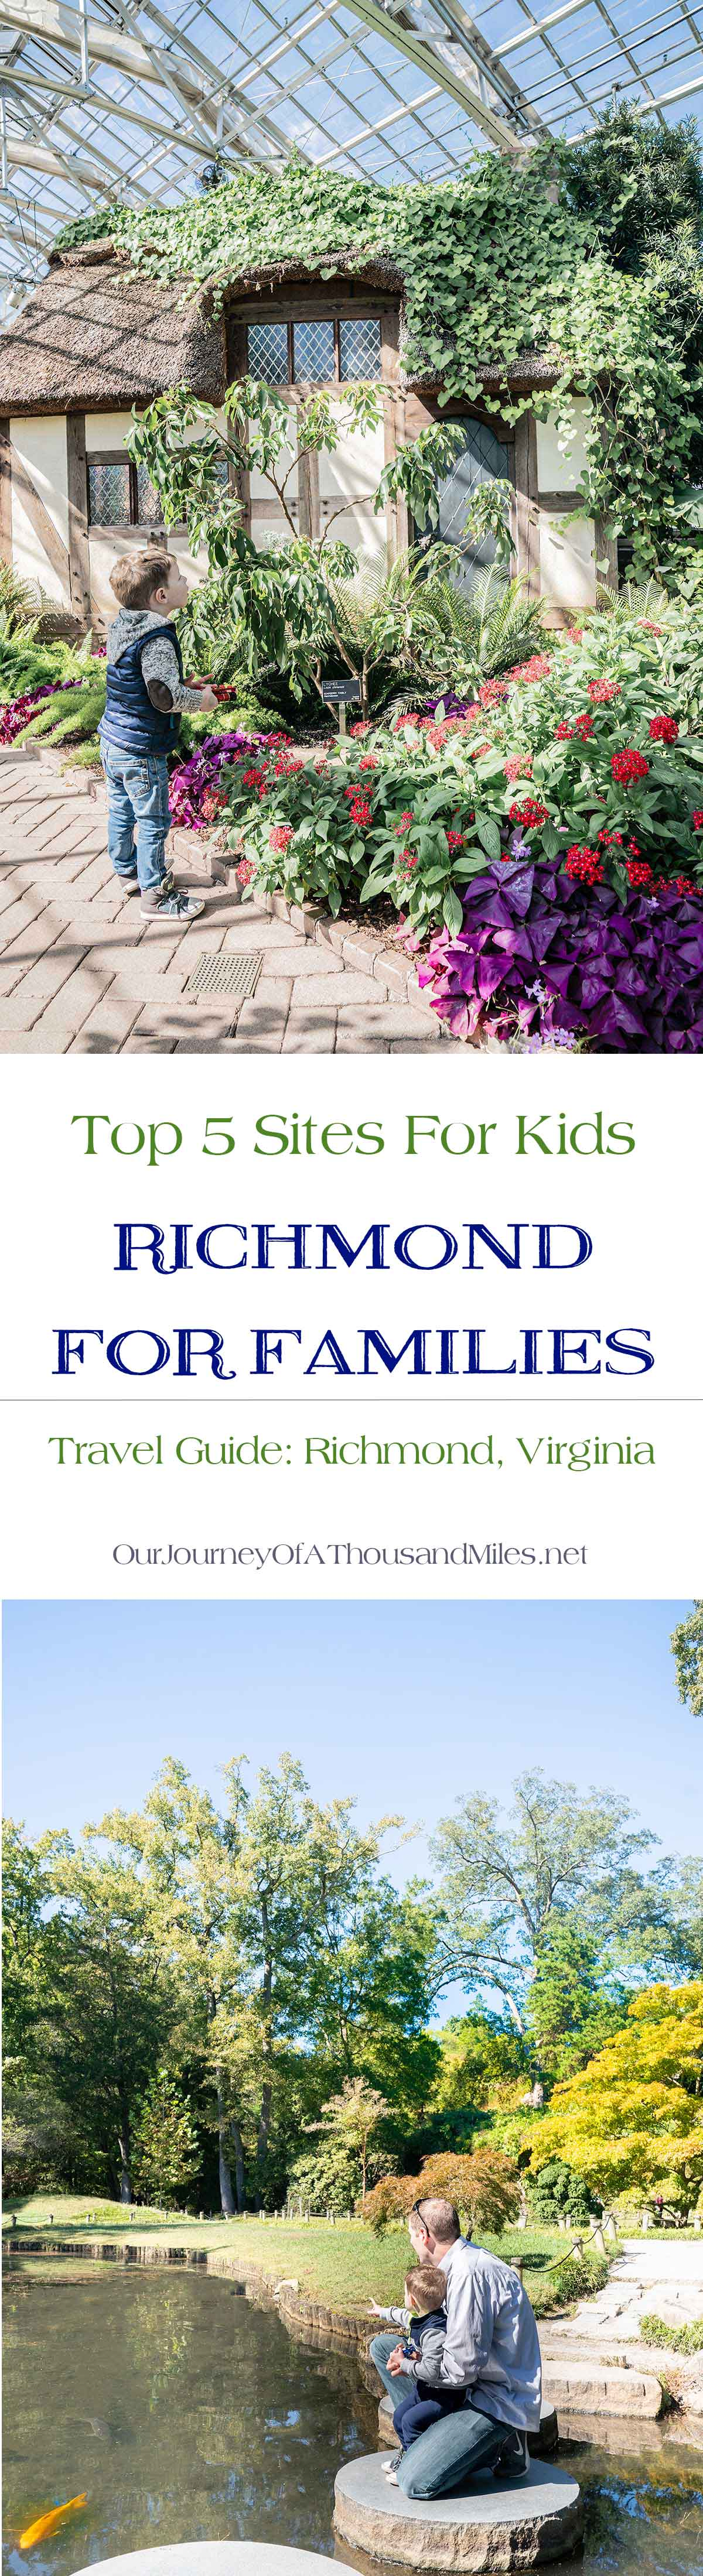 Top-Five-Sites-For-Kids-Richmond-For-Families-Richmond-Virginia-Travel-Guide